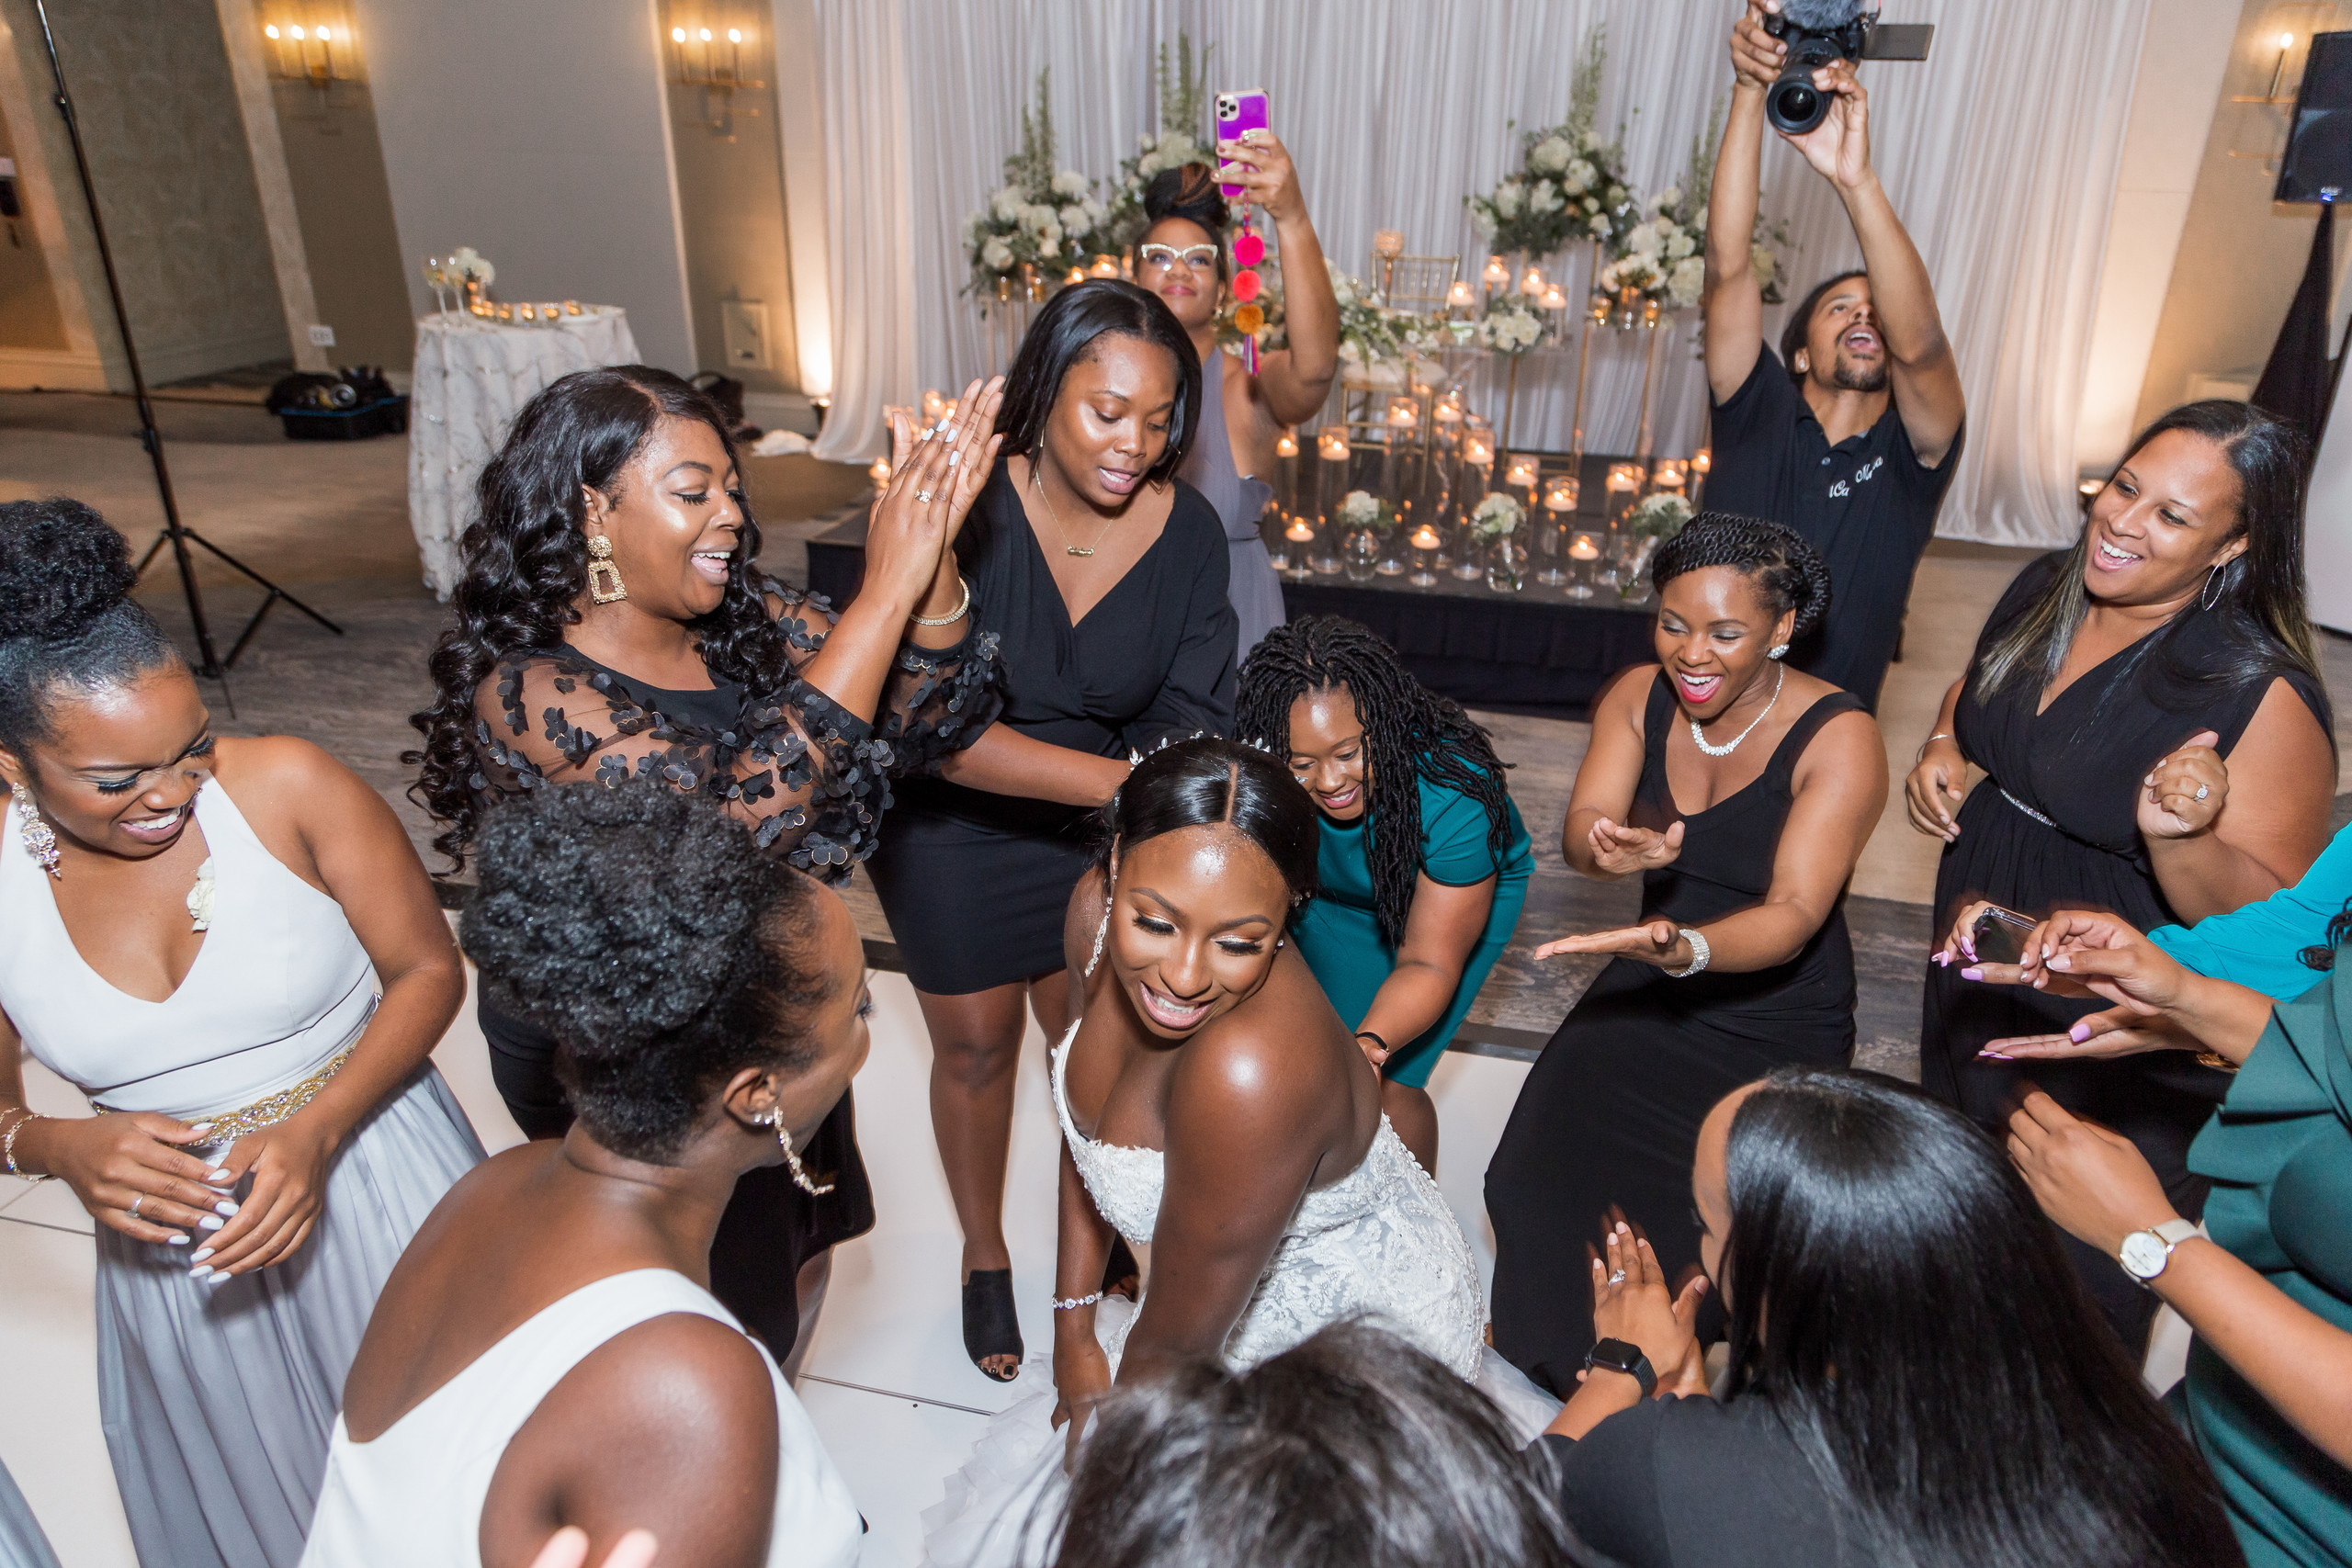 The bride happily dances on the dancefloor with her friends during the wedding reception at the Hilton Main in Norfolk, Virginia.